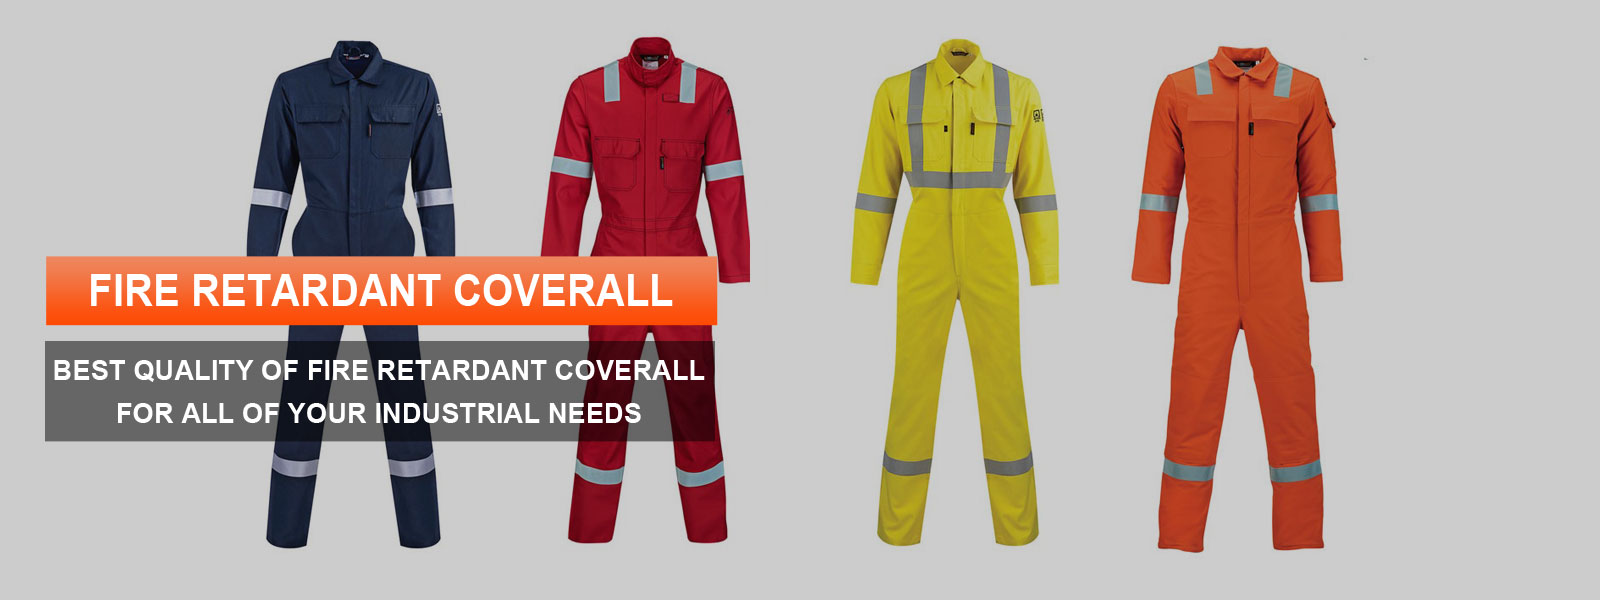 Fire Retardant Coverall Manufacturers in Lebanon